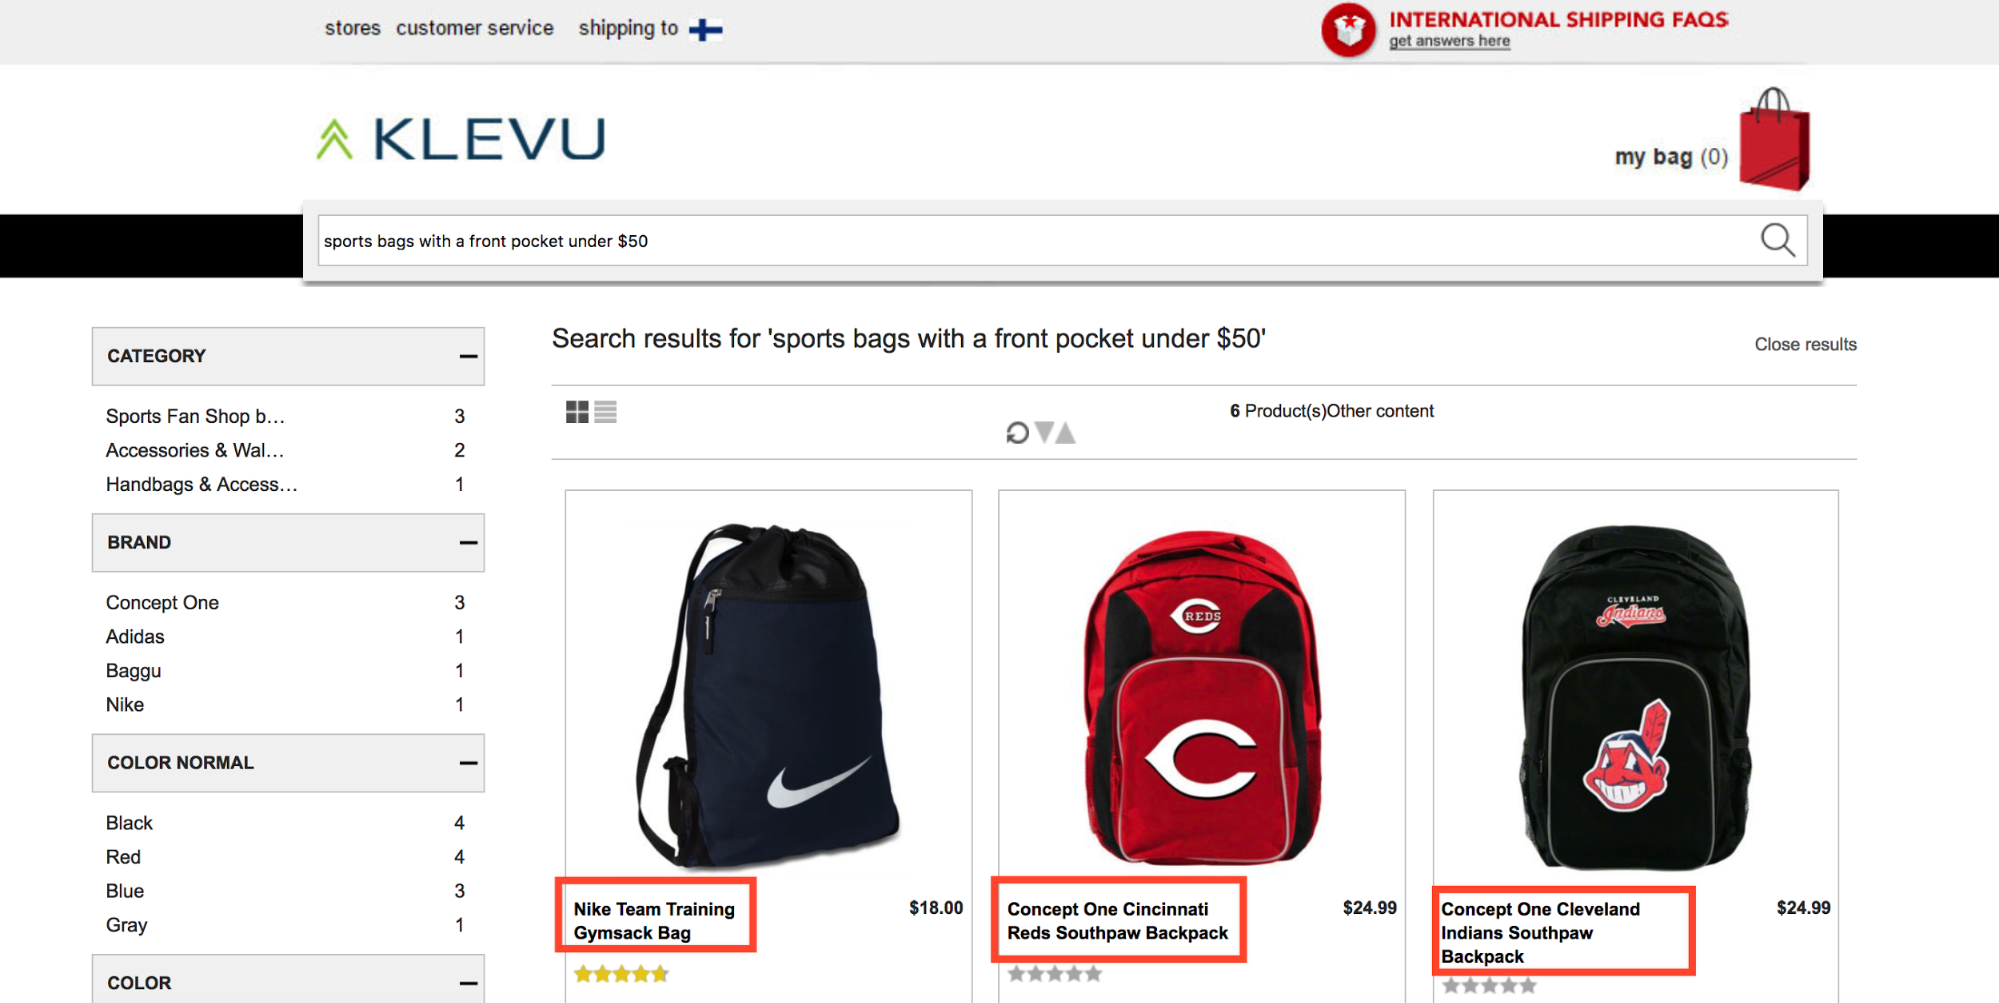 Klevu's ecommerce search solution distinguishes between different color searches